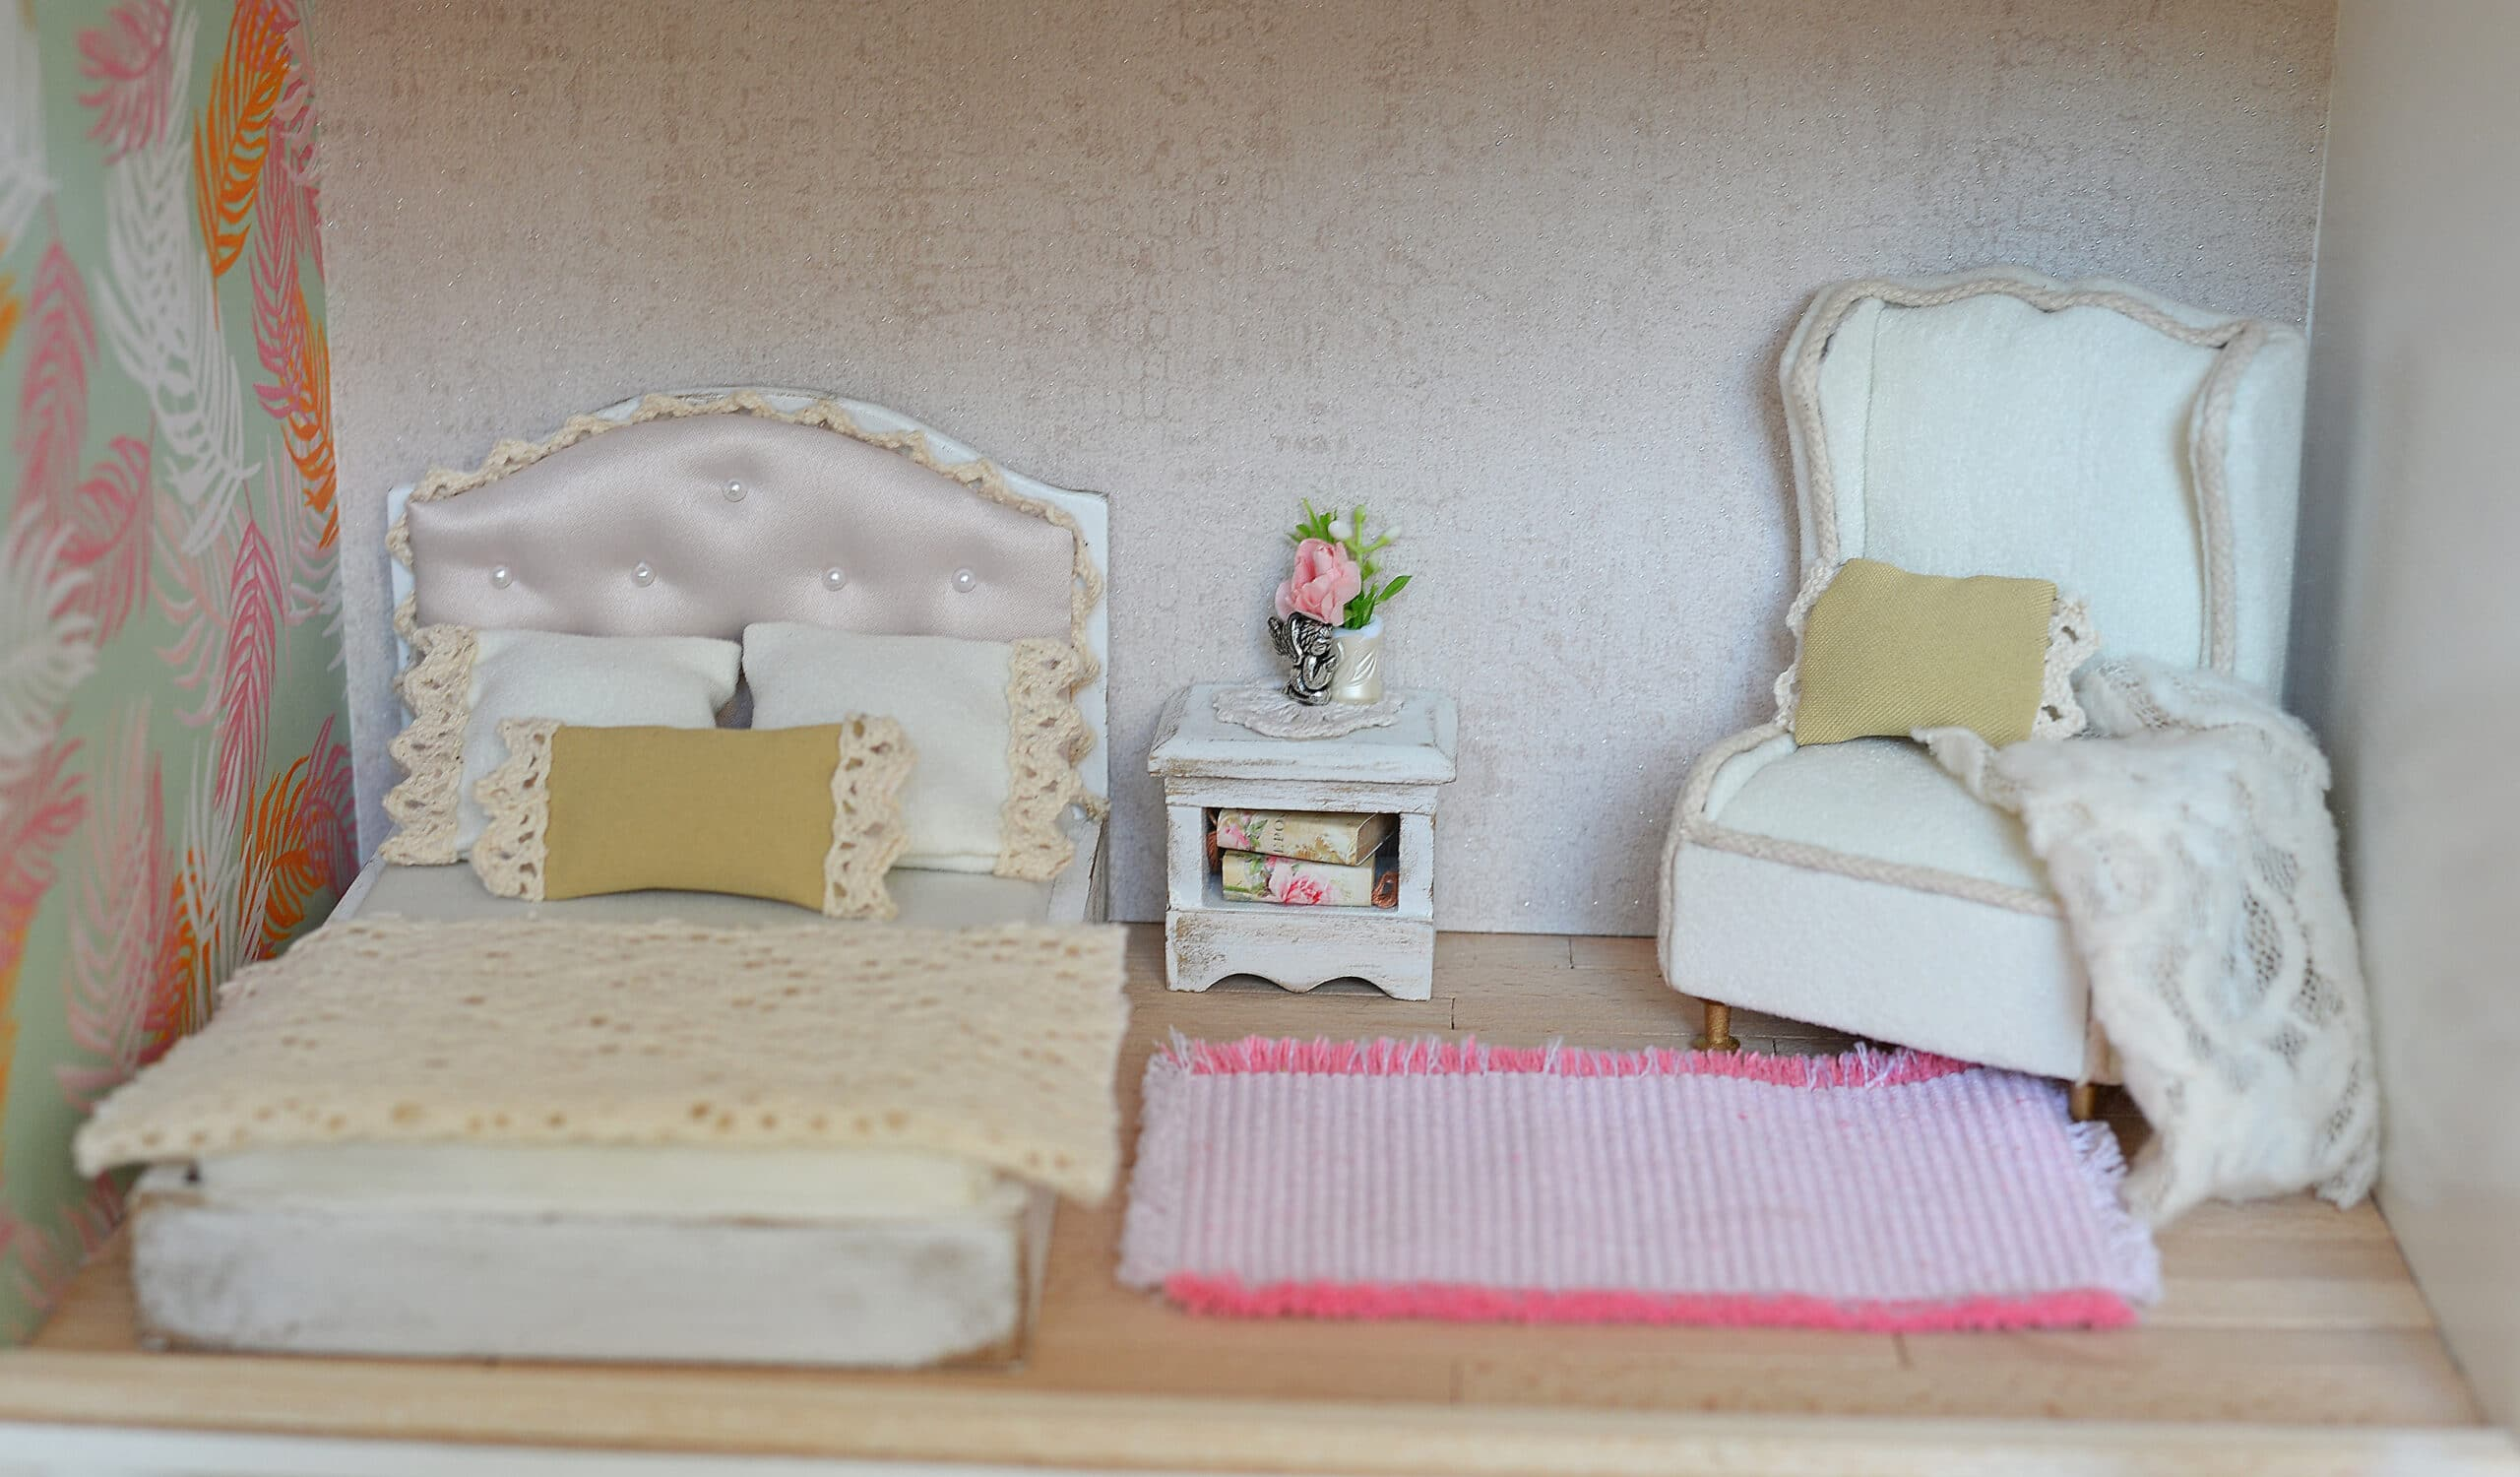 Dollhouse, bedroom with bed and armchair and pink carpet